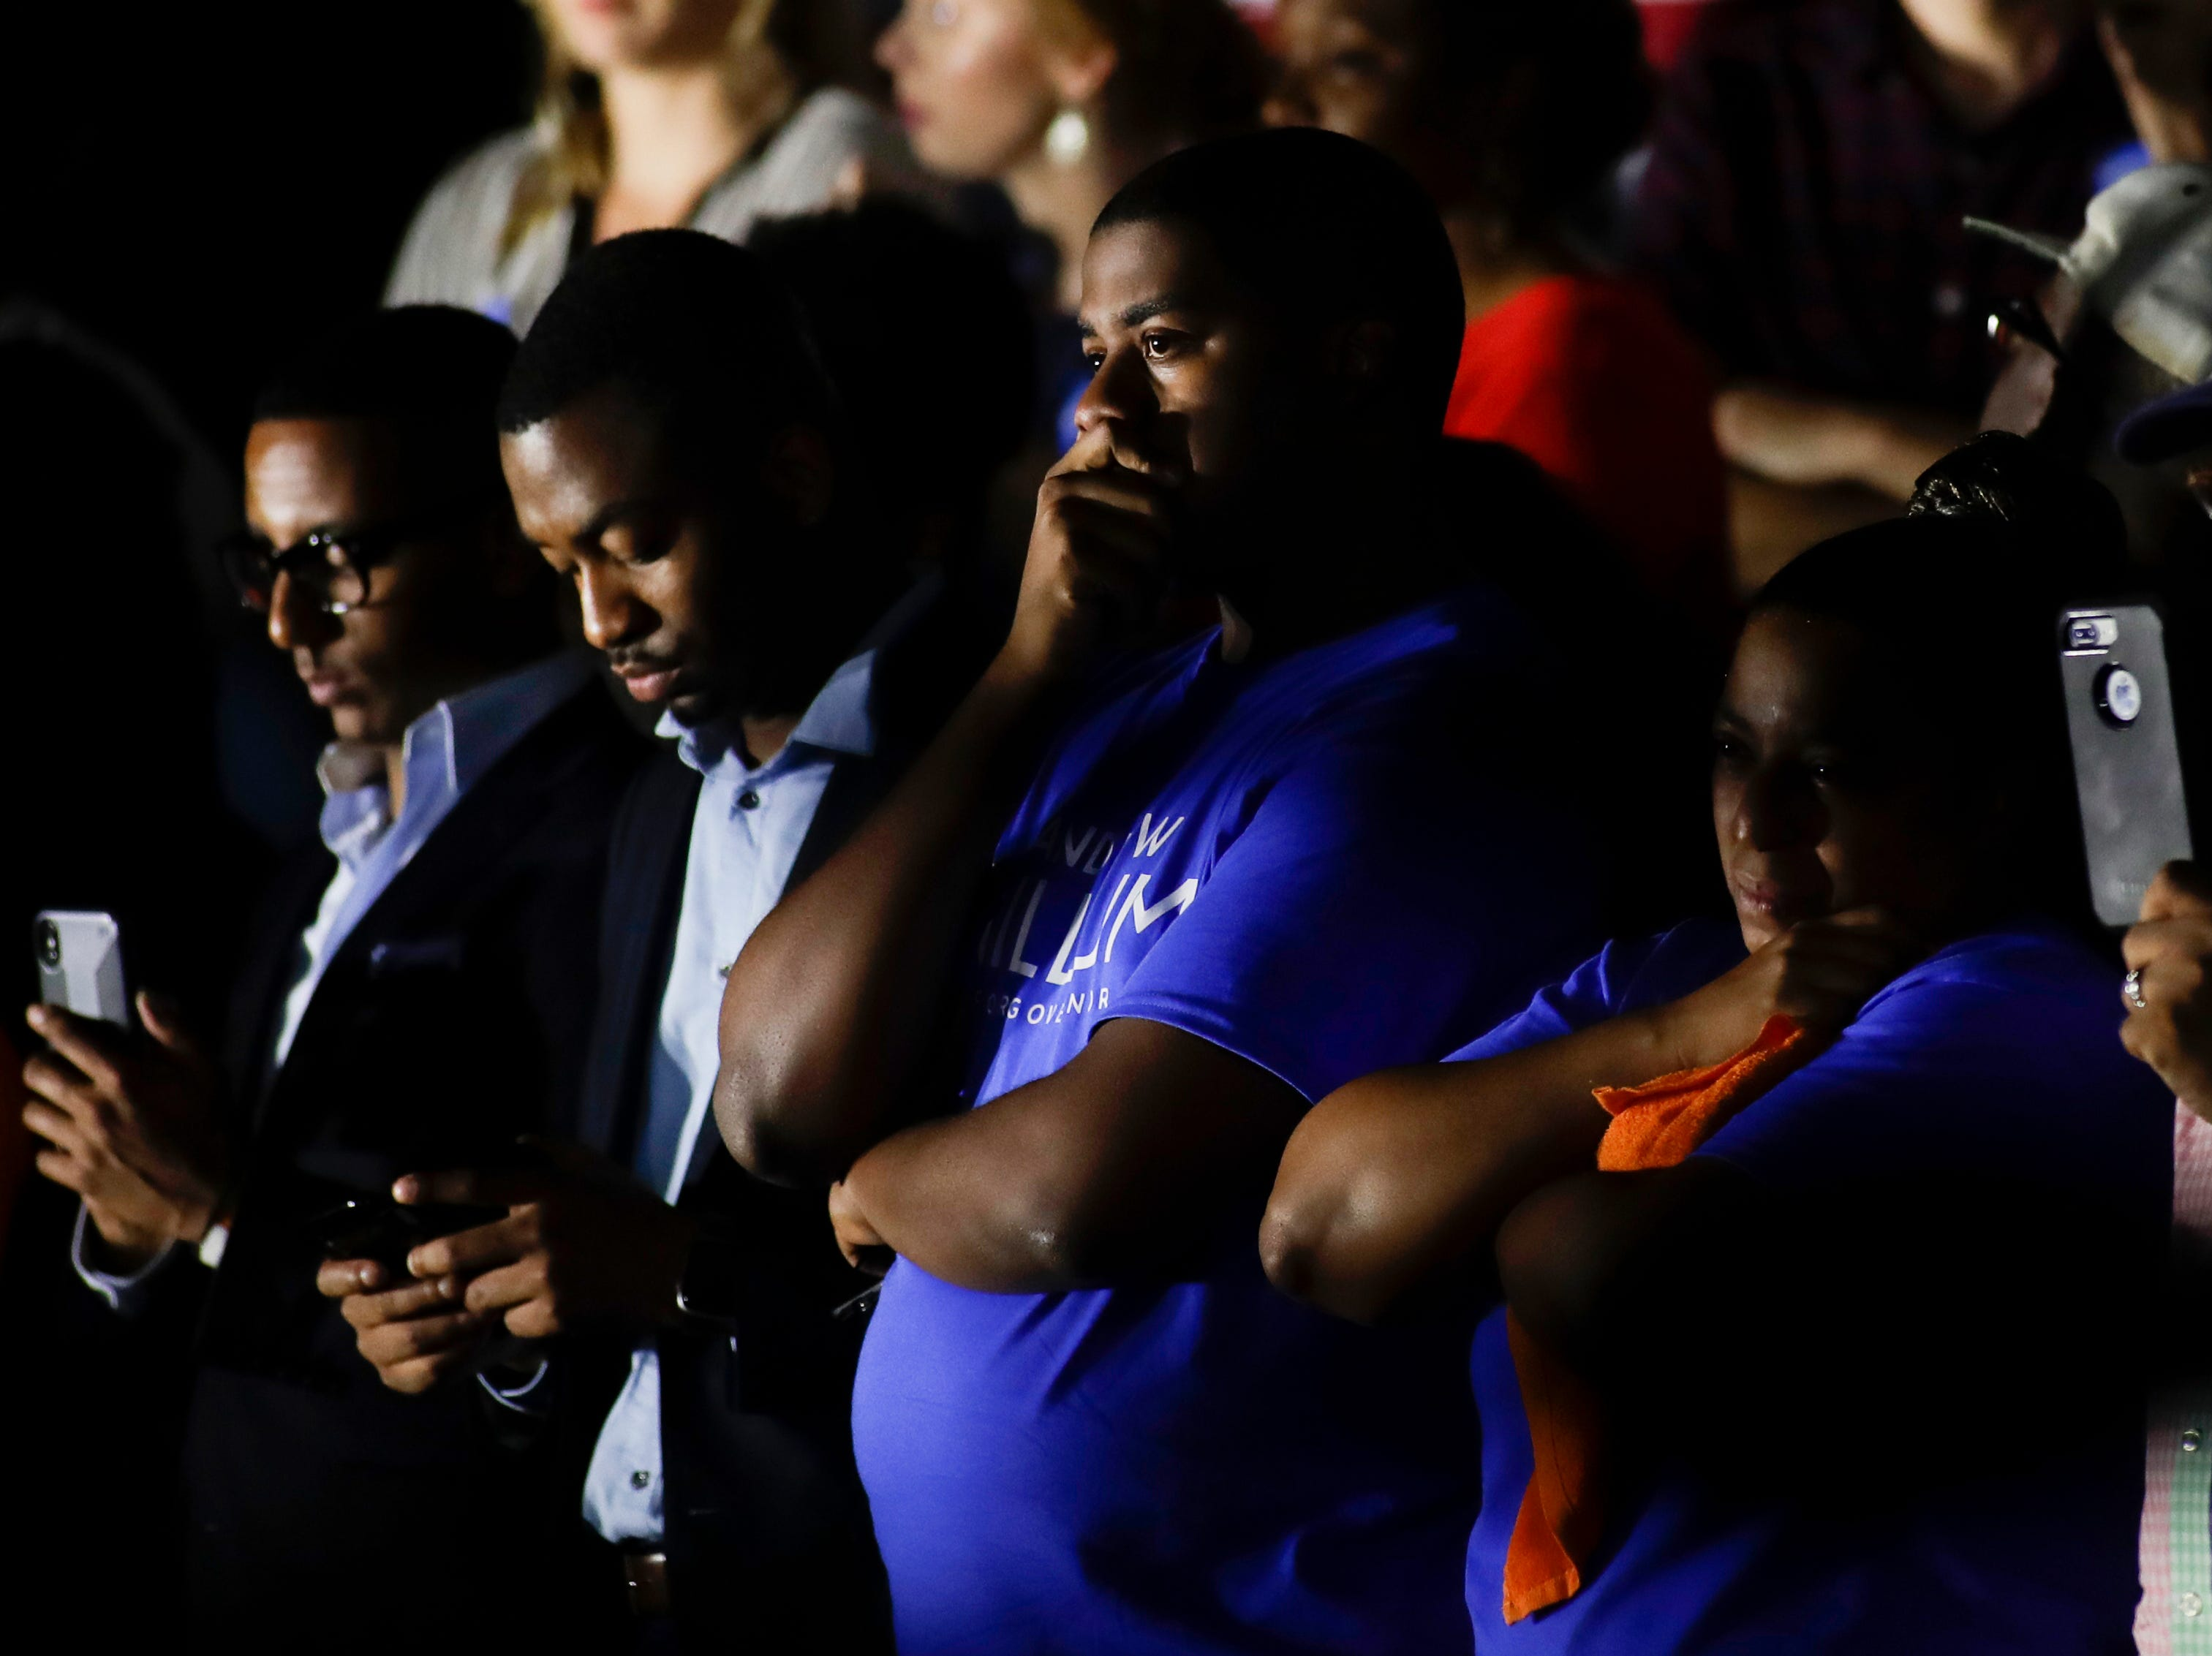 Brandon Johnson of Gainesville reacts as Andrew Gillum makes his concession speech in front of Lee Hall on the Florida A&M campus in Tallahassee, Fla. after losing the governor's race to Ron DeSantis Tuesday, Nov. 6, 2018.